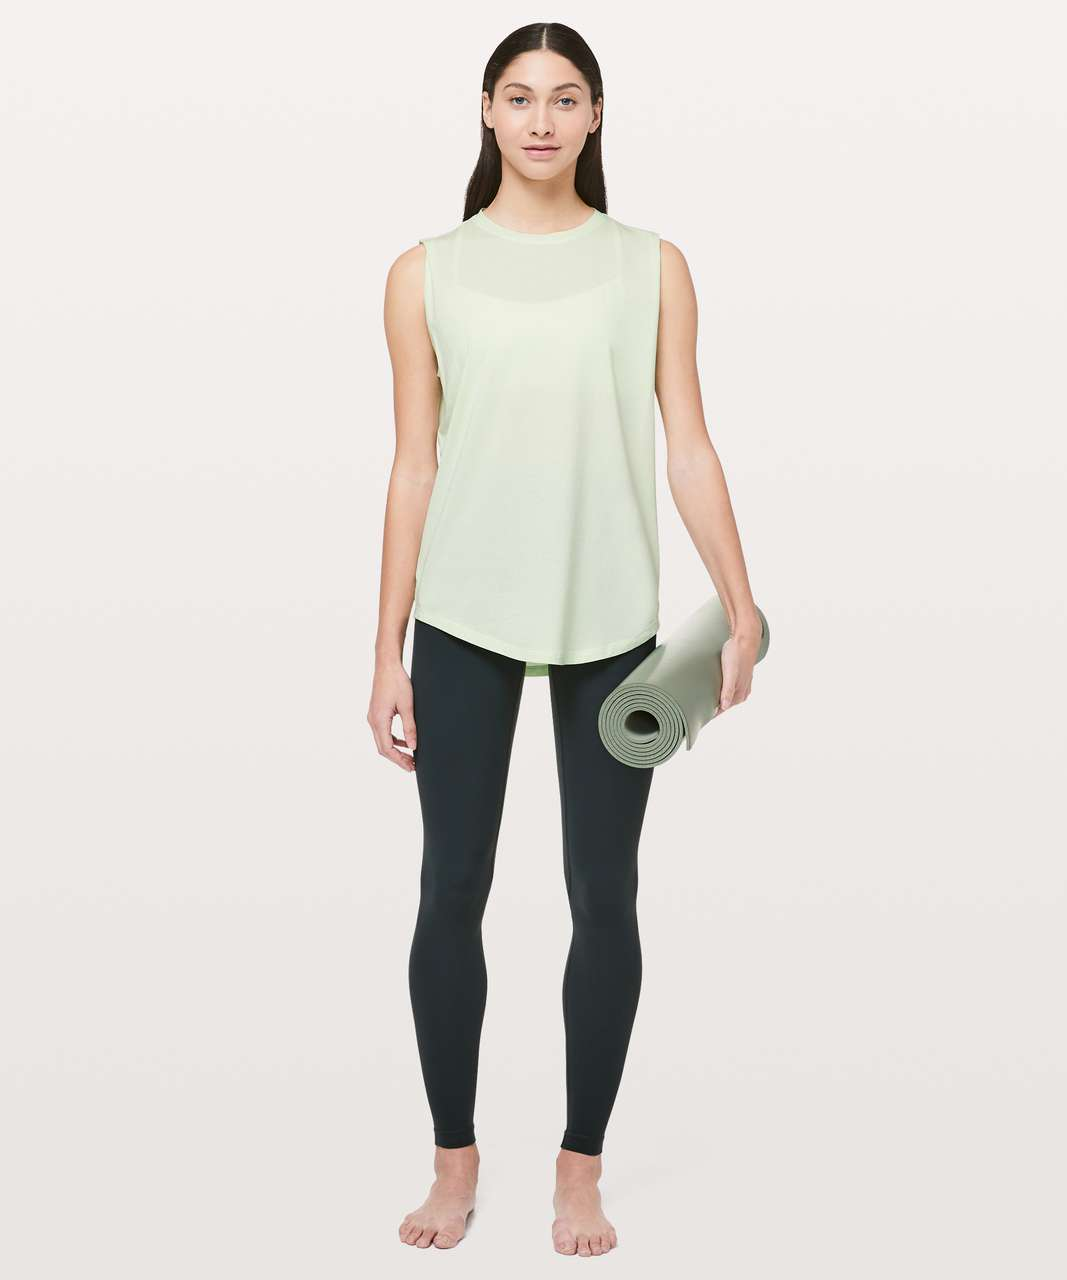 Lululemon Brunswick Muscle Tank - Citrus Ice